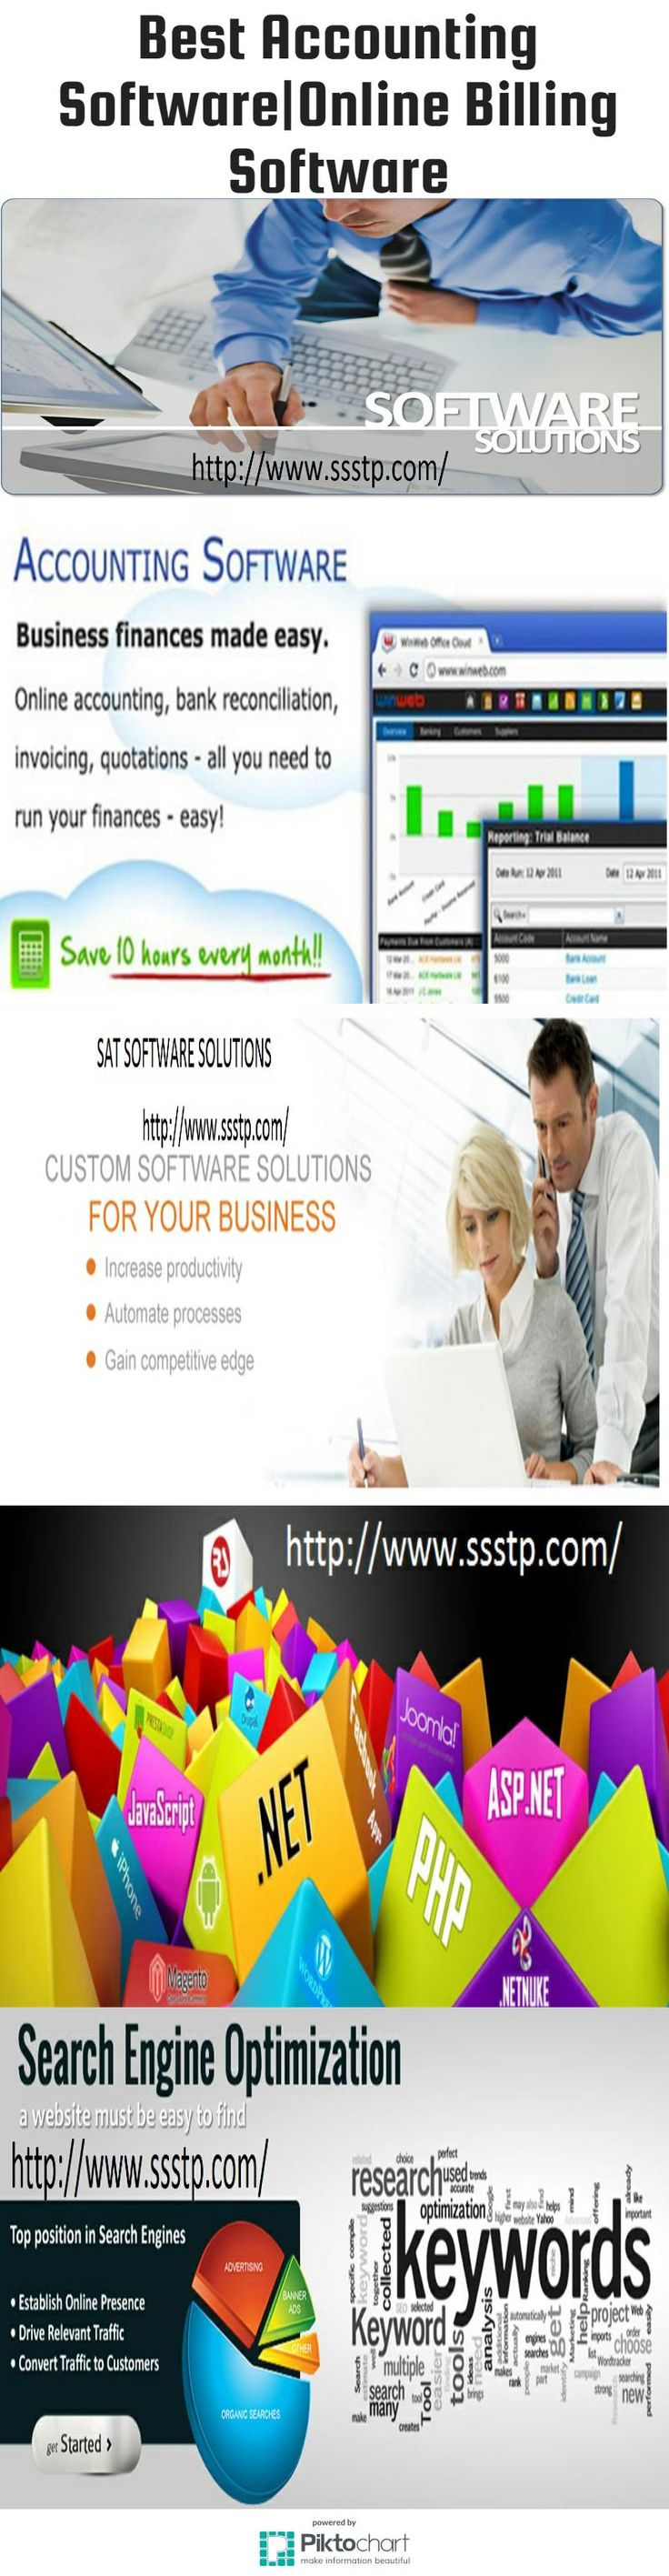 Get the special discount on every purchase on every product here best accounting software or on purchasing of online billing software. Make your business accounting run with full speed call us to book a copy for you.